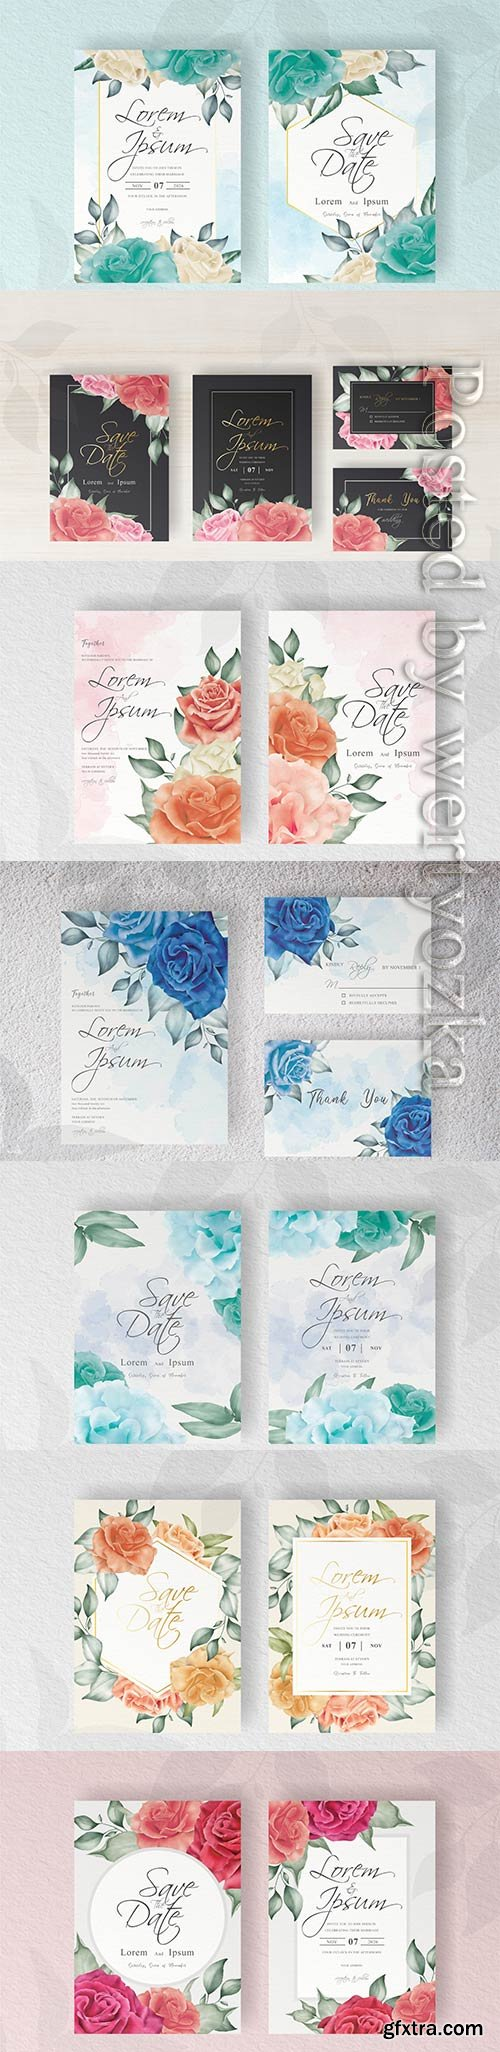 Elegant wedding invitation card template with hand painted floral and leaves